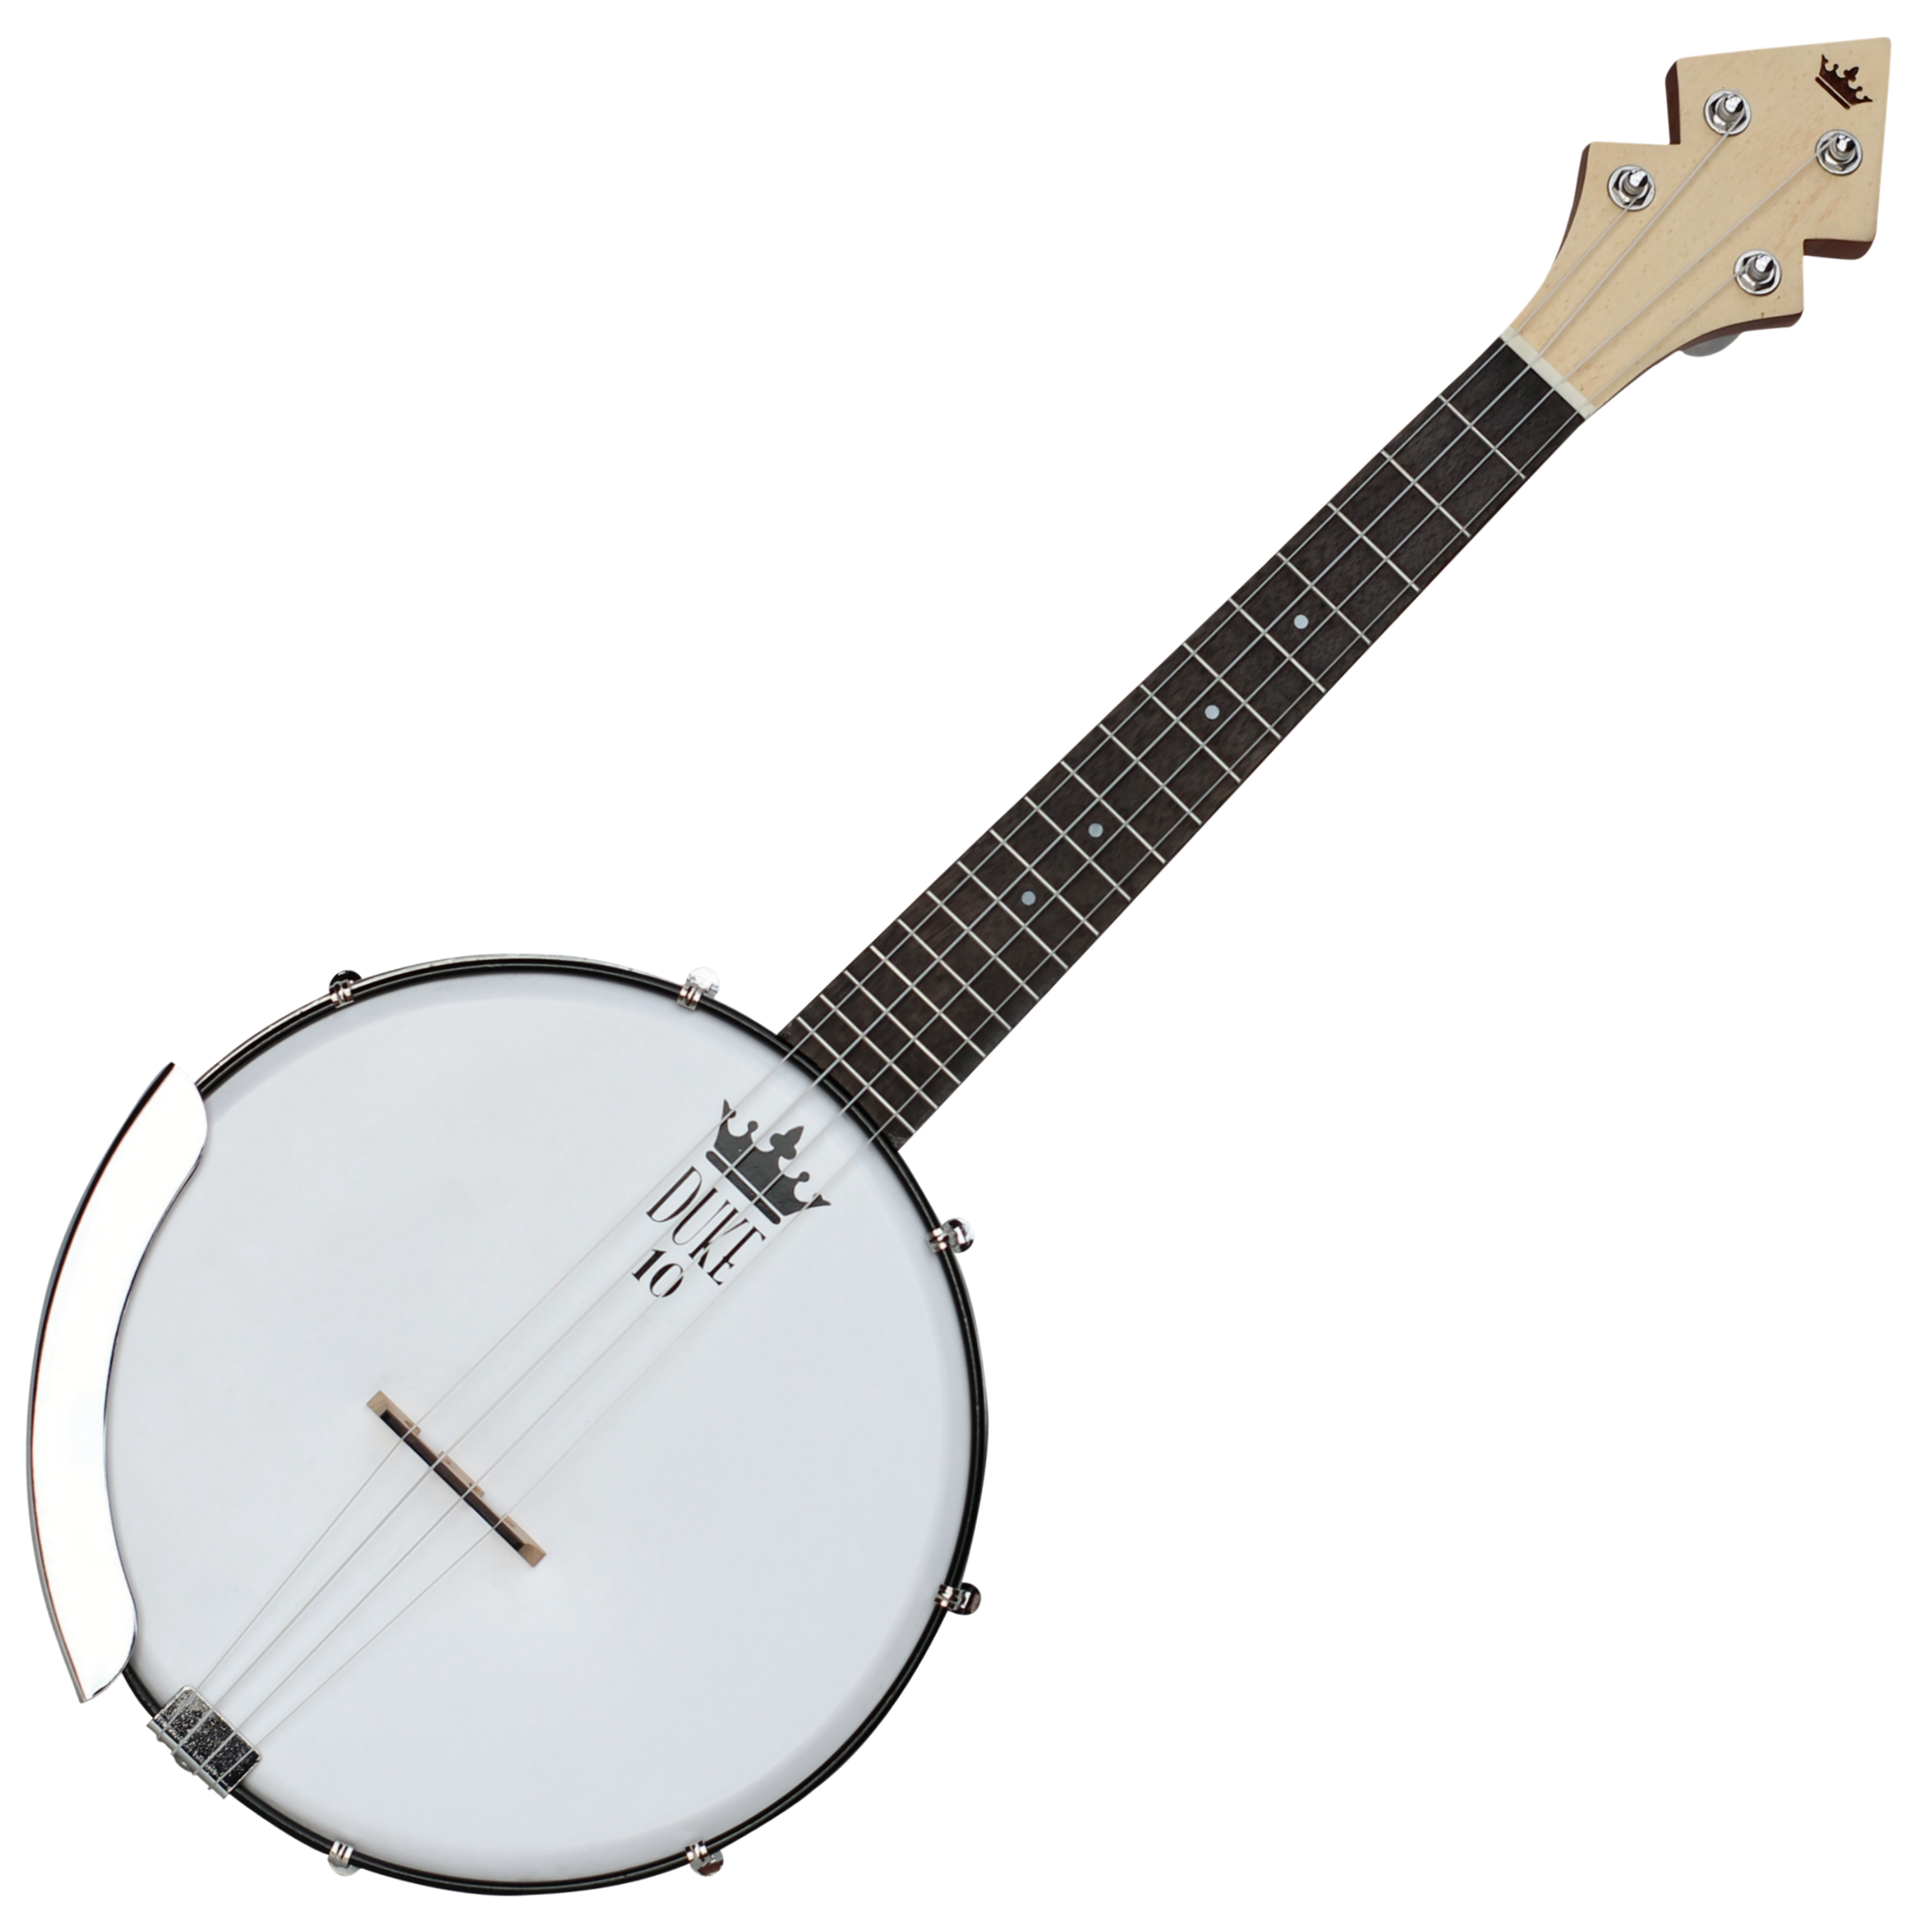 The DUKE10 Tenor Banjo Ukulele from Duke Banjo Ukuleles